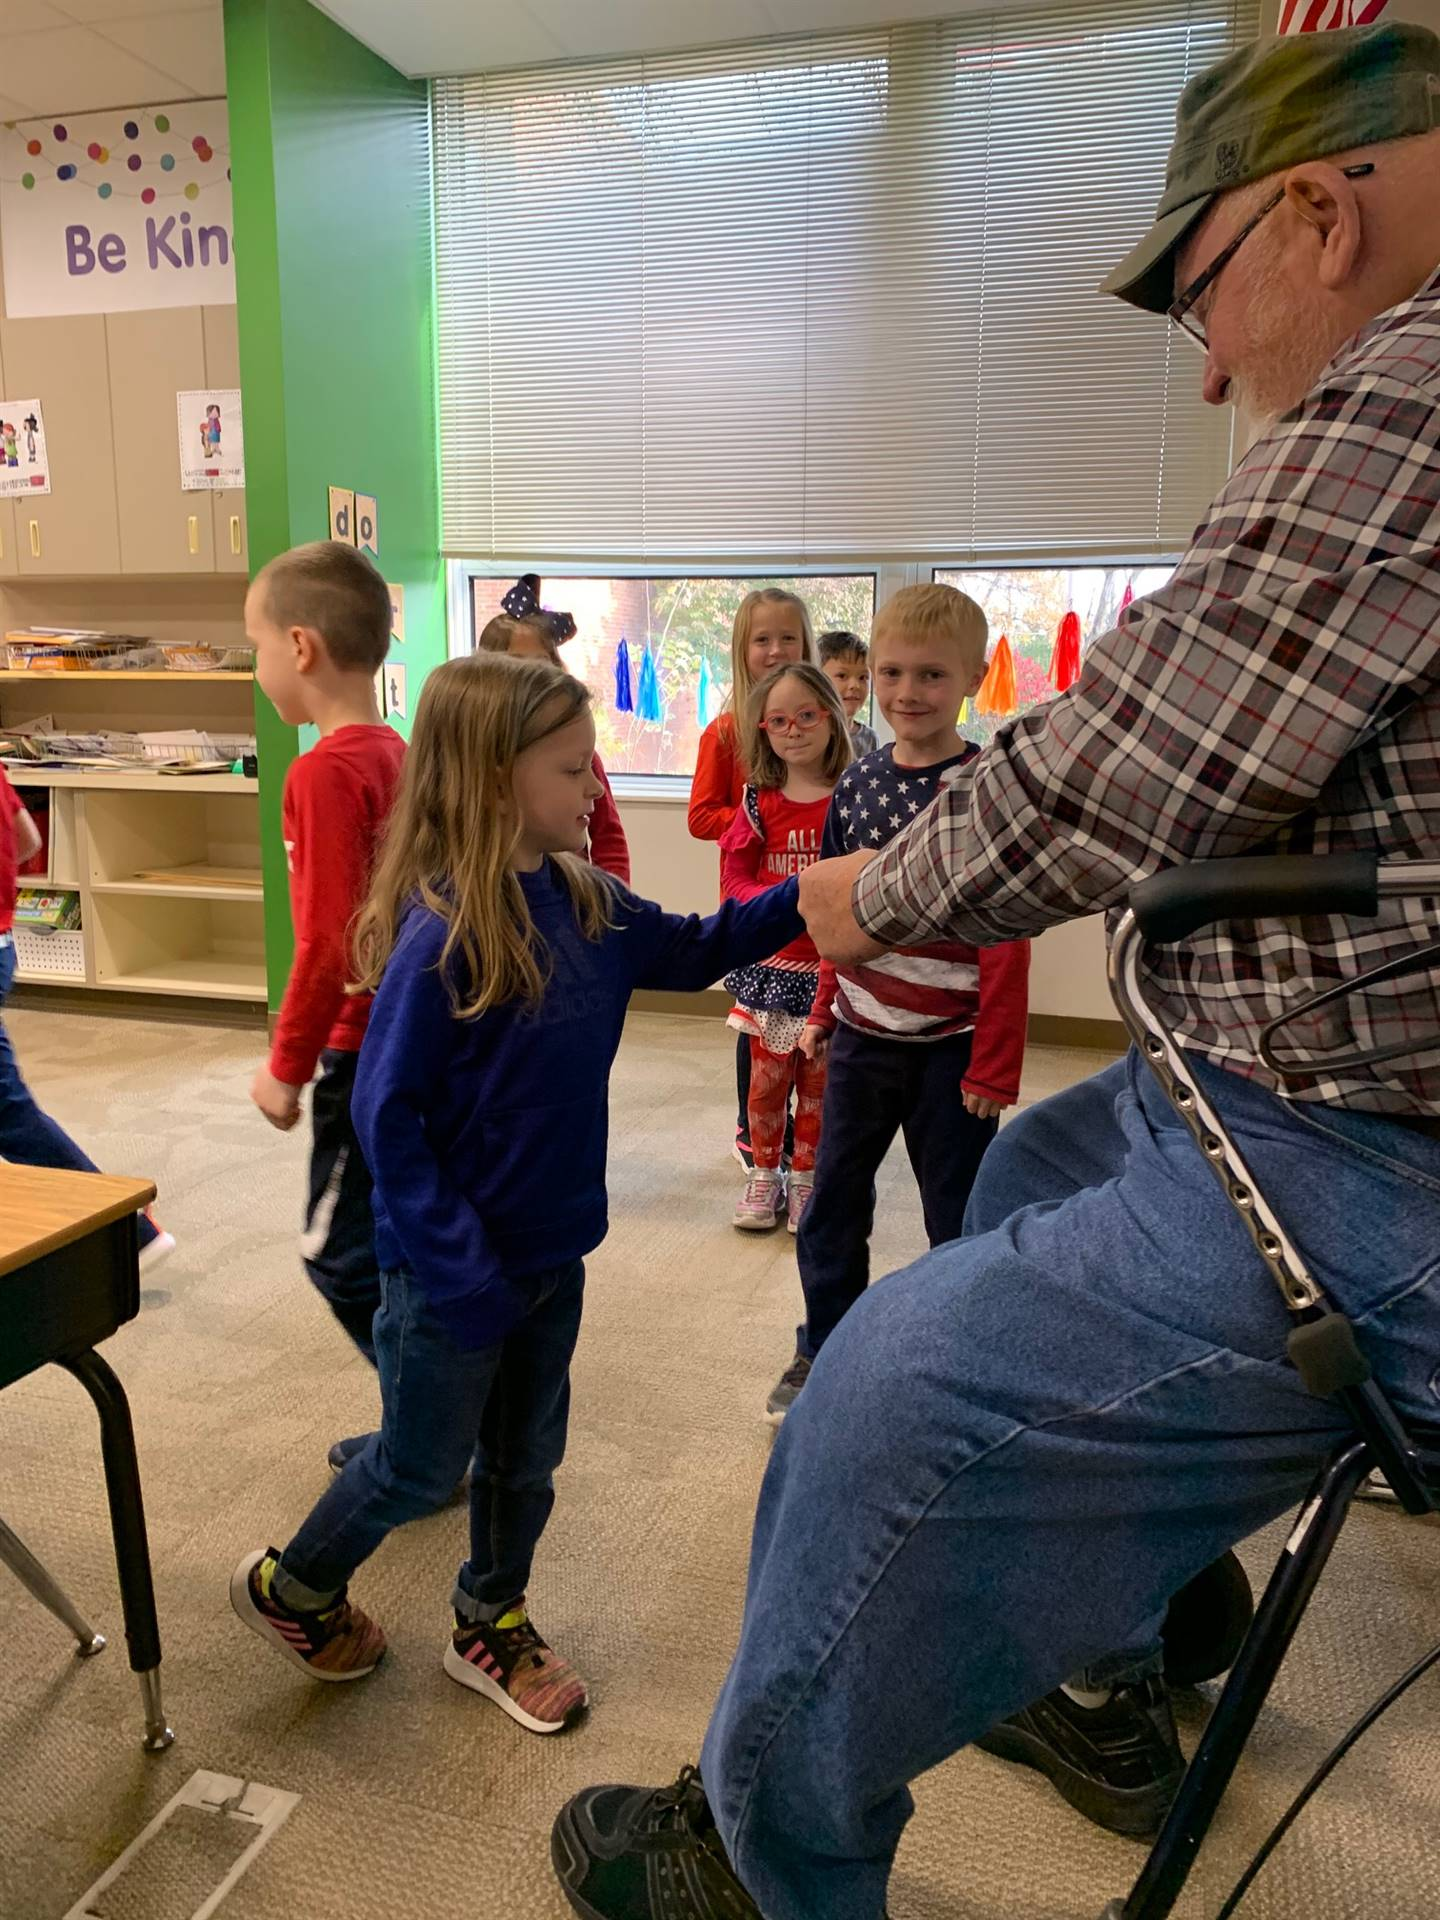 Students shaking veteran's hand